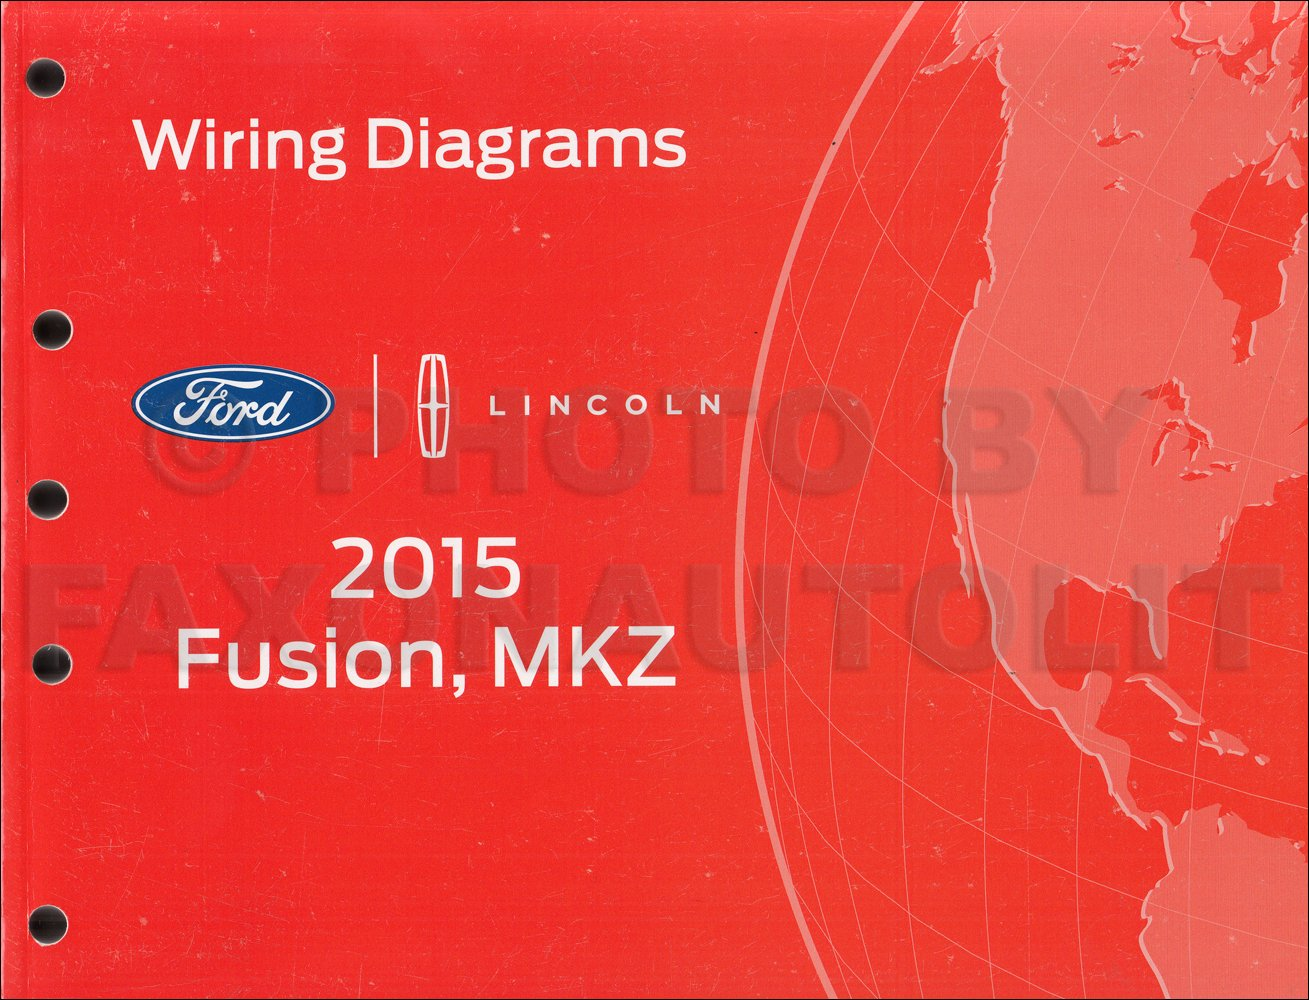 2015 Ford Fusion Lincoln MKZ Wiring Diagram Manual Original: Ford:  Amazon.com: Books | 2015 Ford Fusion Wiring Diagram |  | Amazon.com